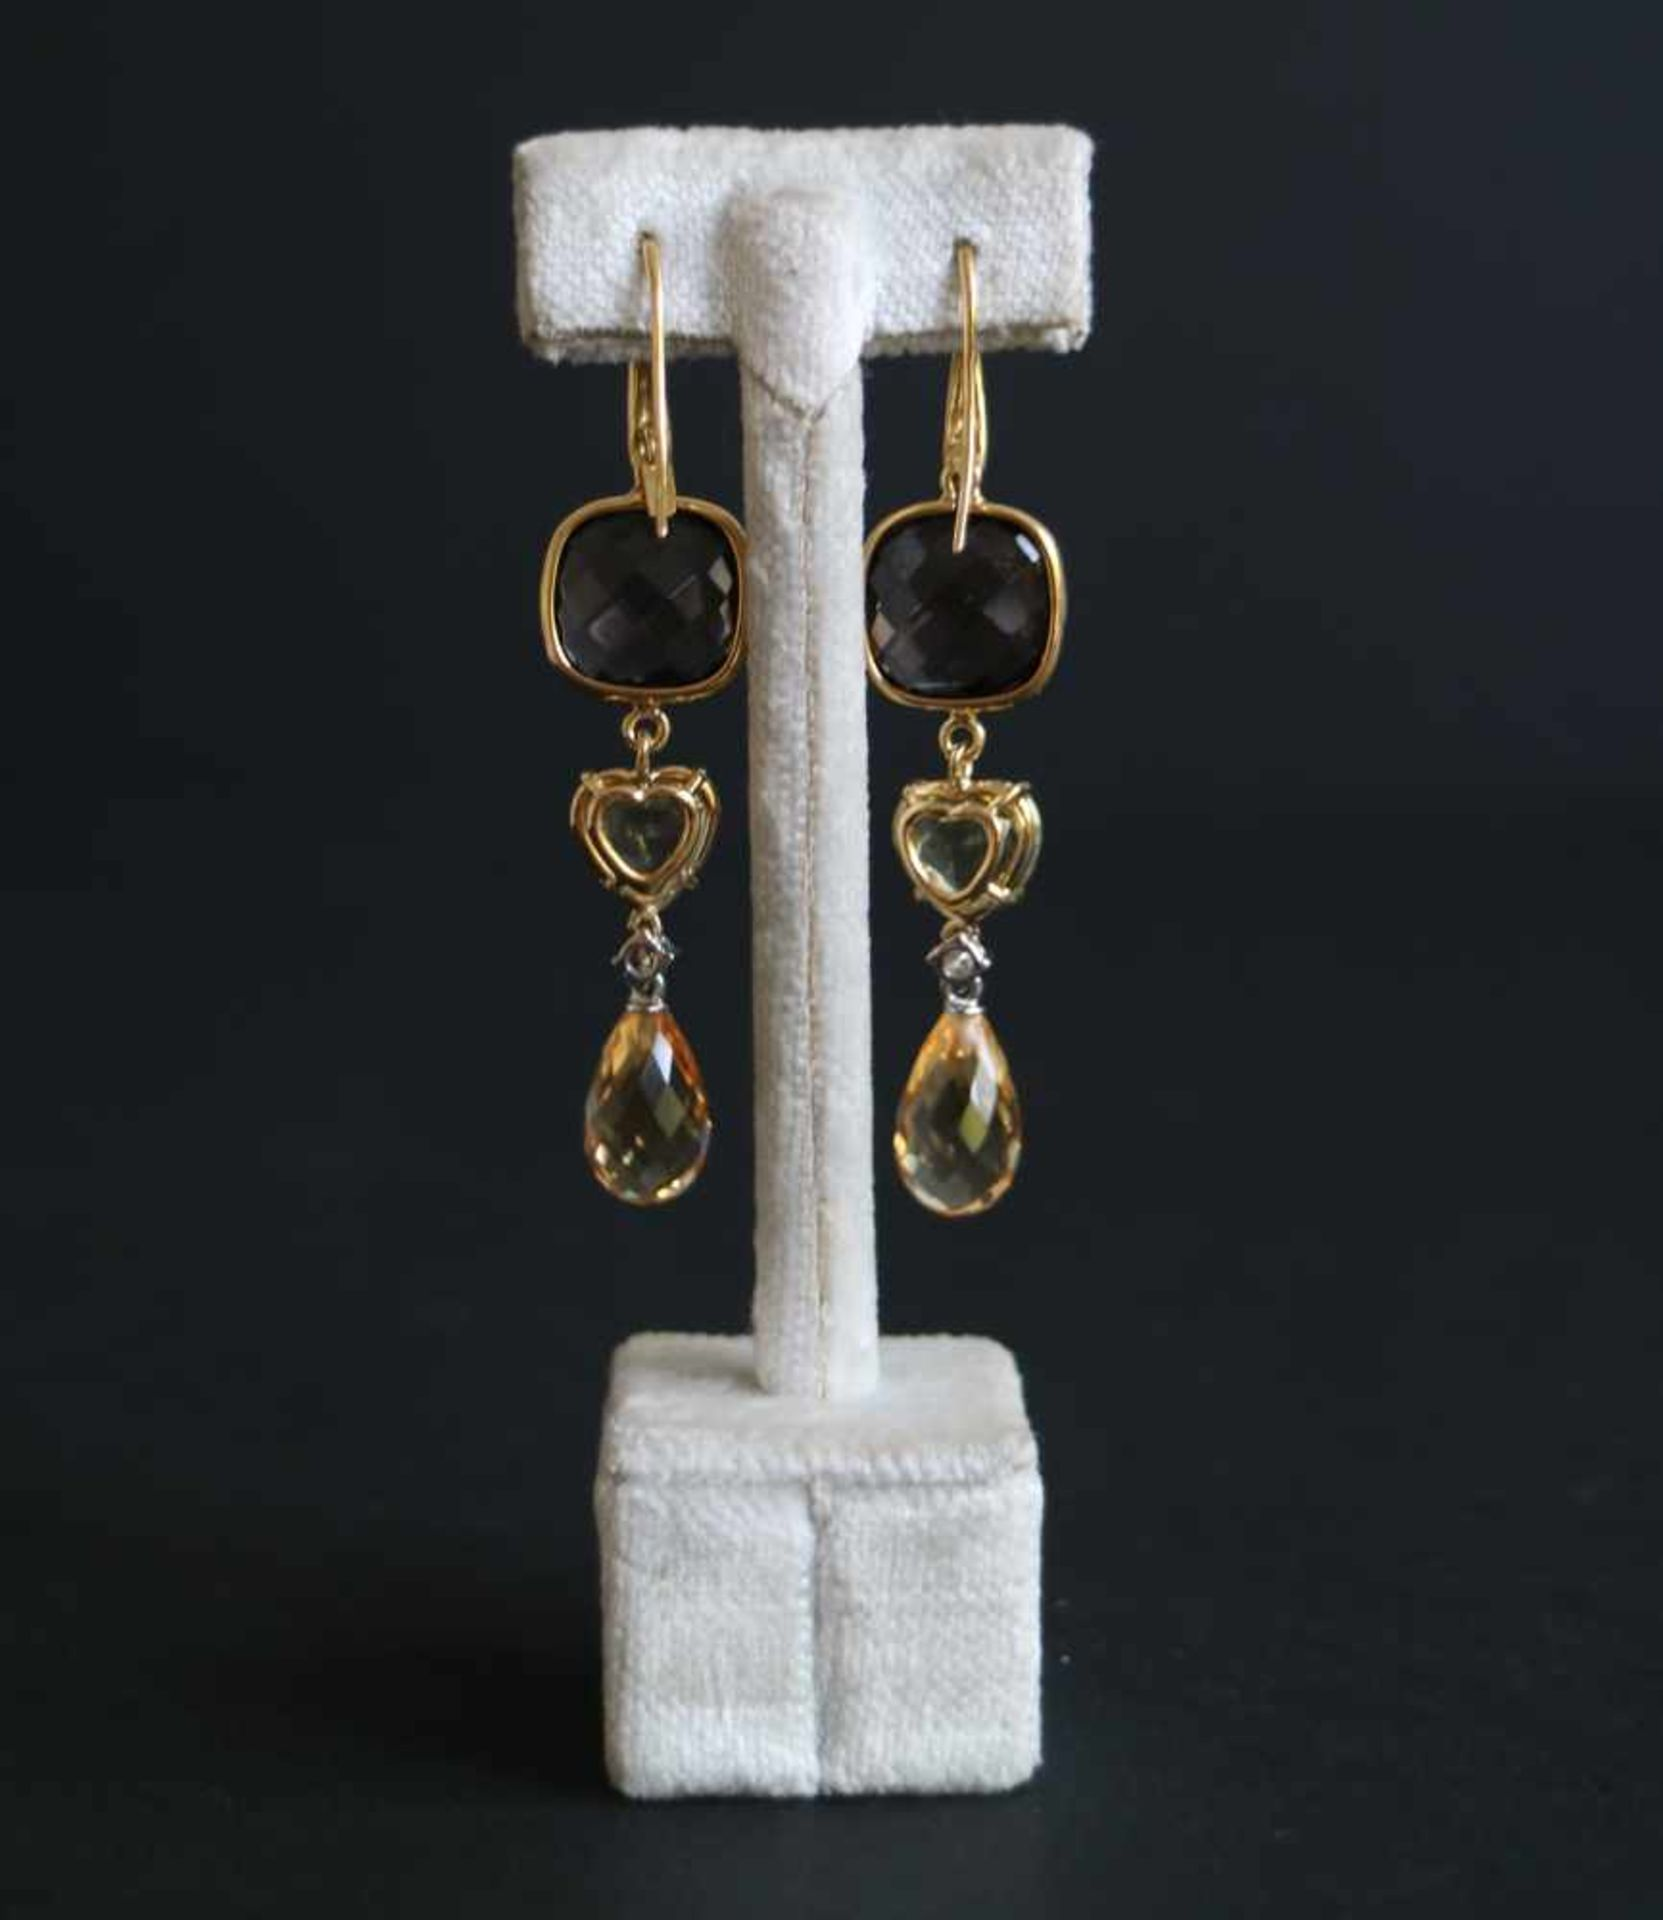 Los 944 - Earrings with diamond and semi-precious stones (smoky quartz and citrine), gold 18 Kt, 2 diamonds